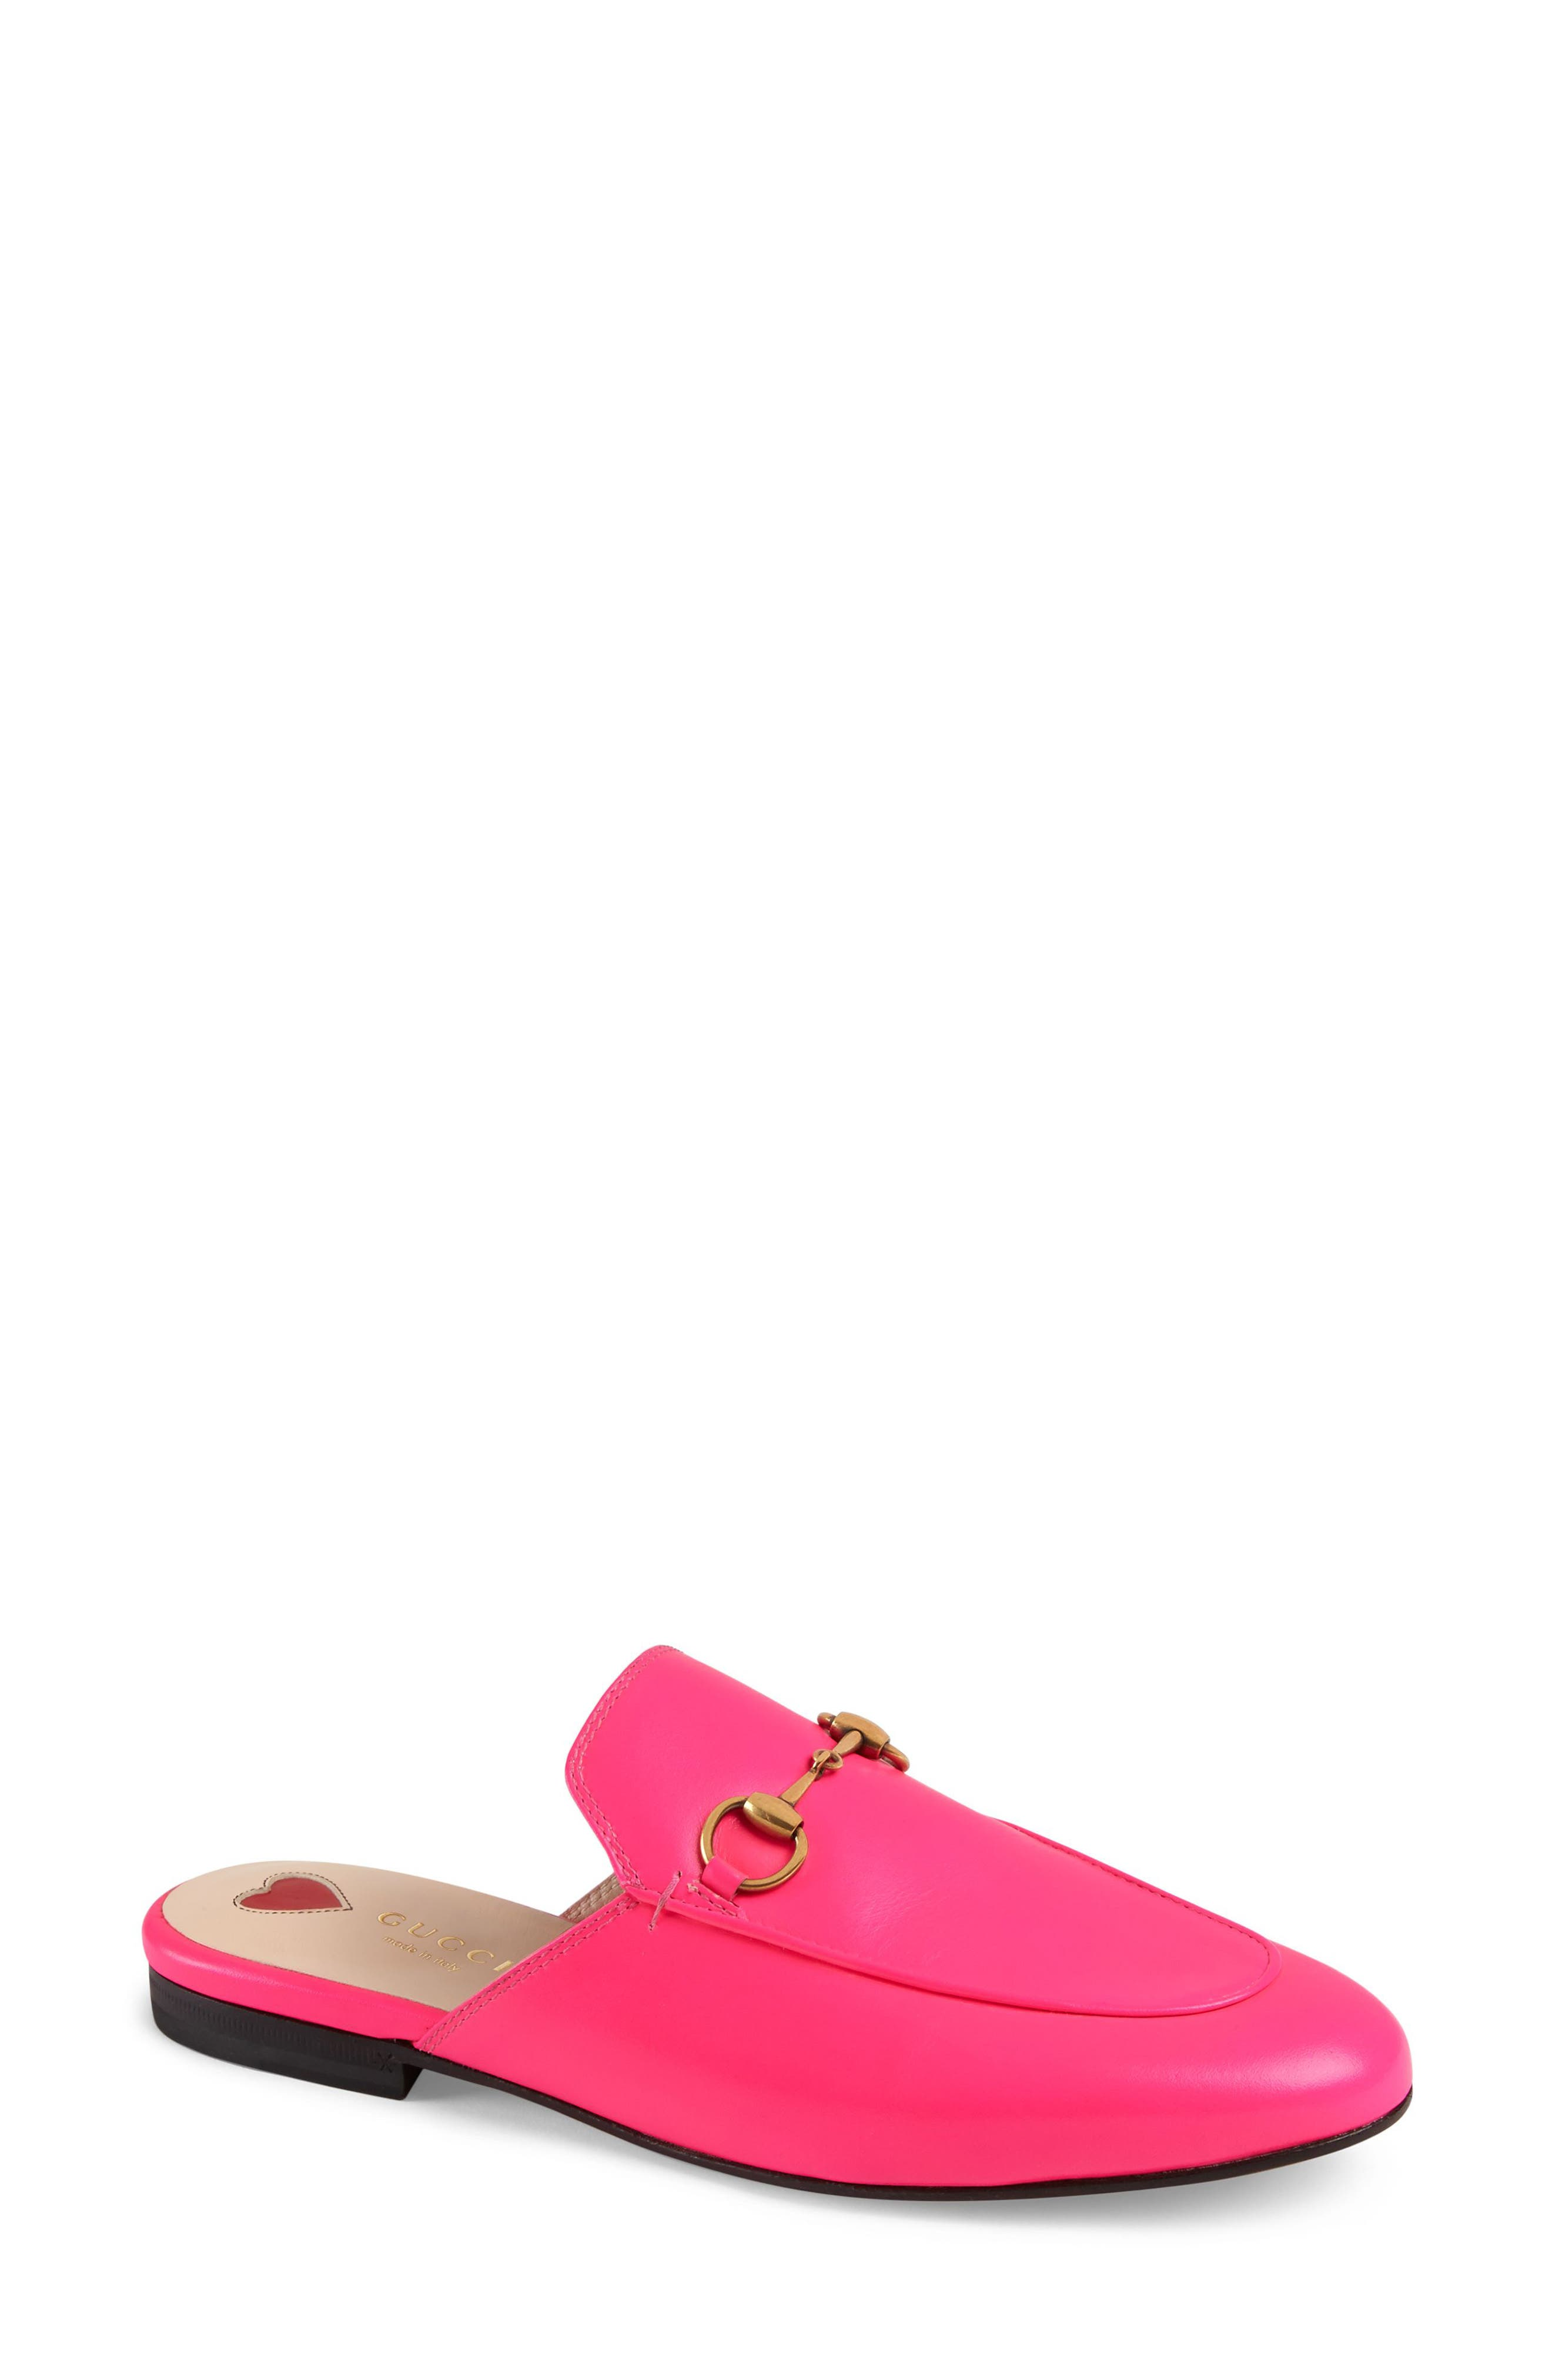 Gucci Princetown Loafer Mule - Pink